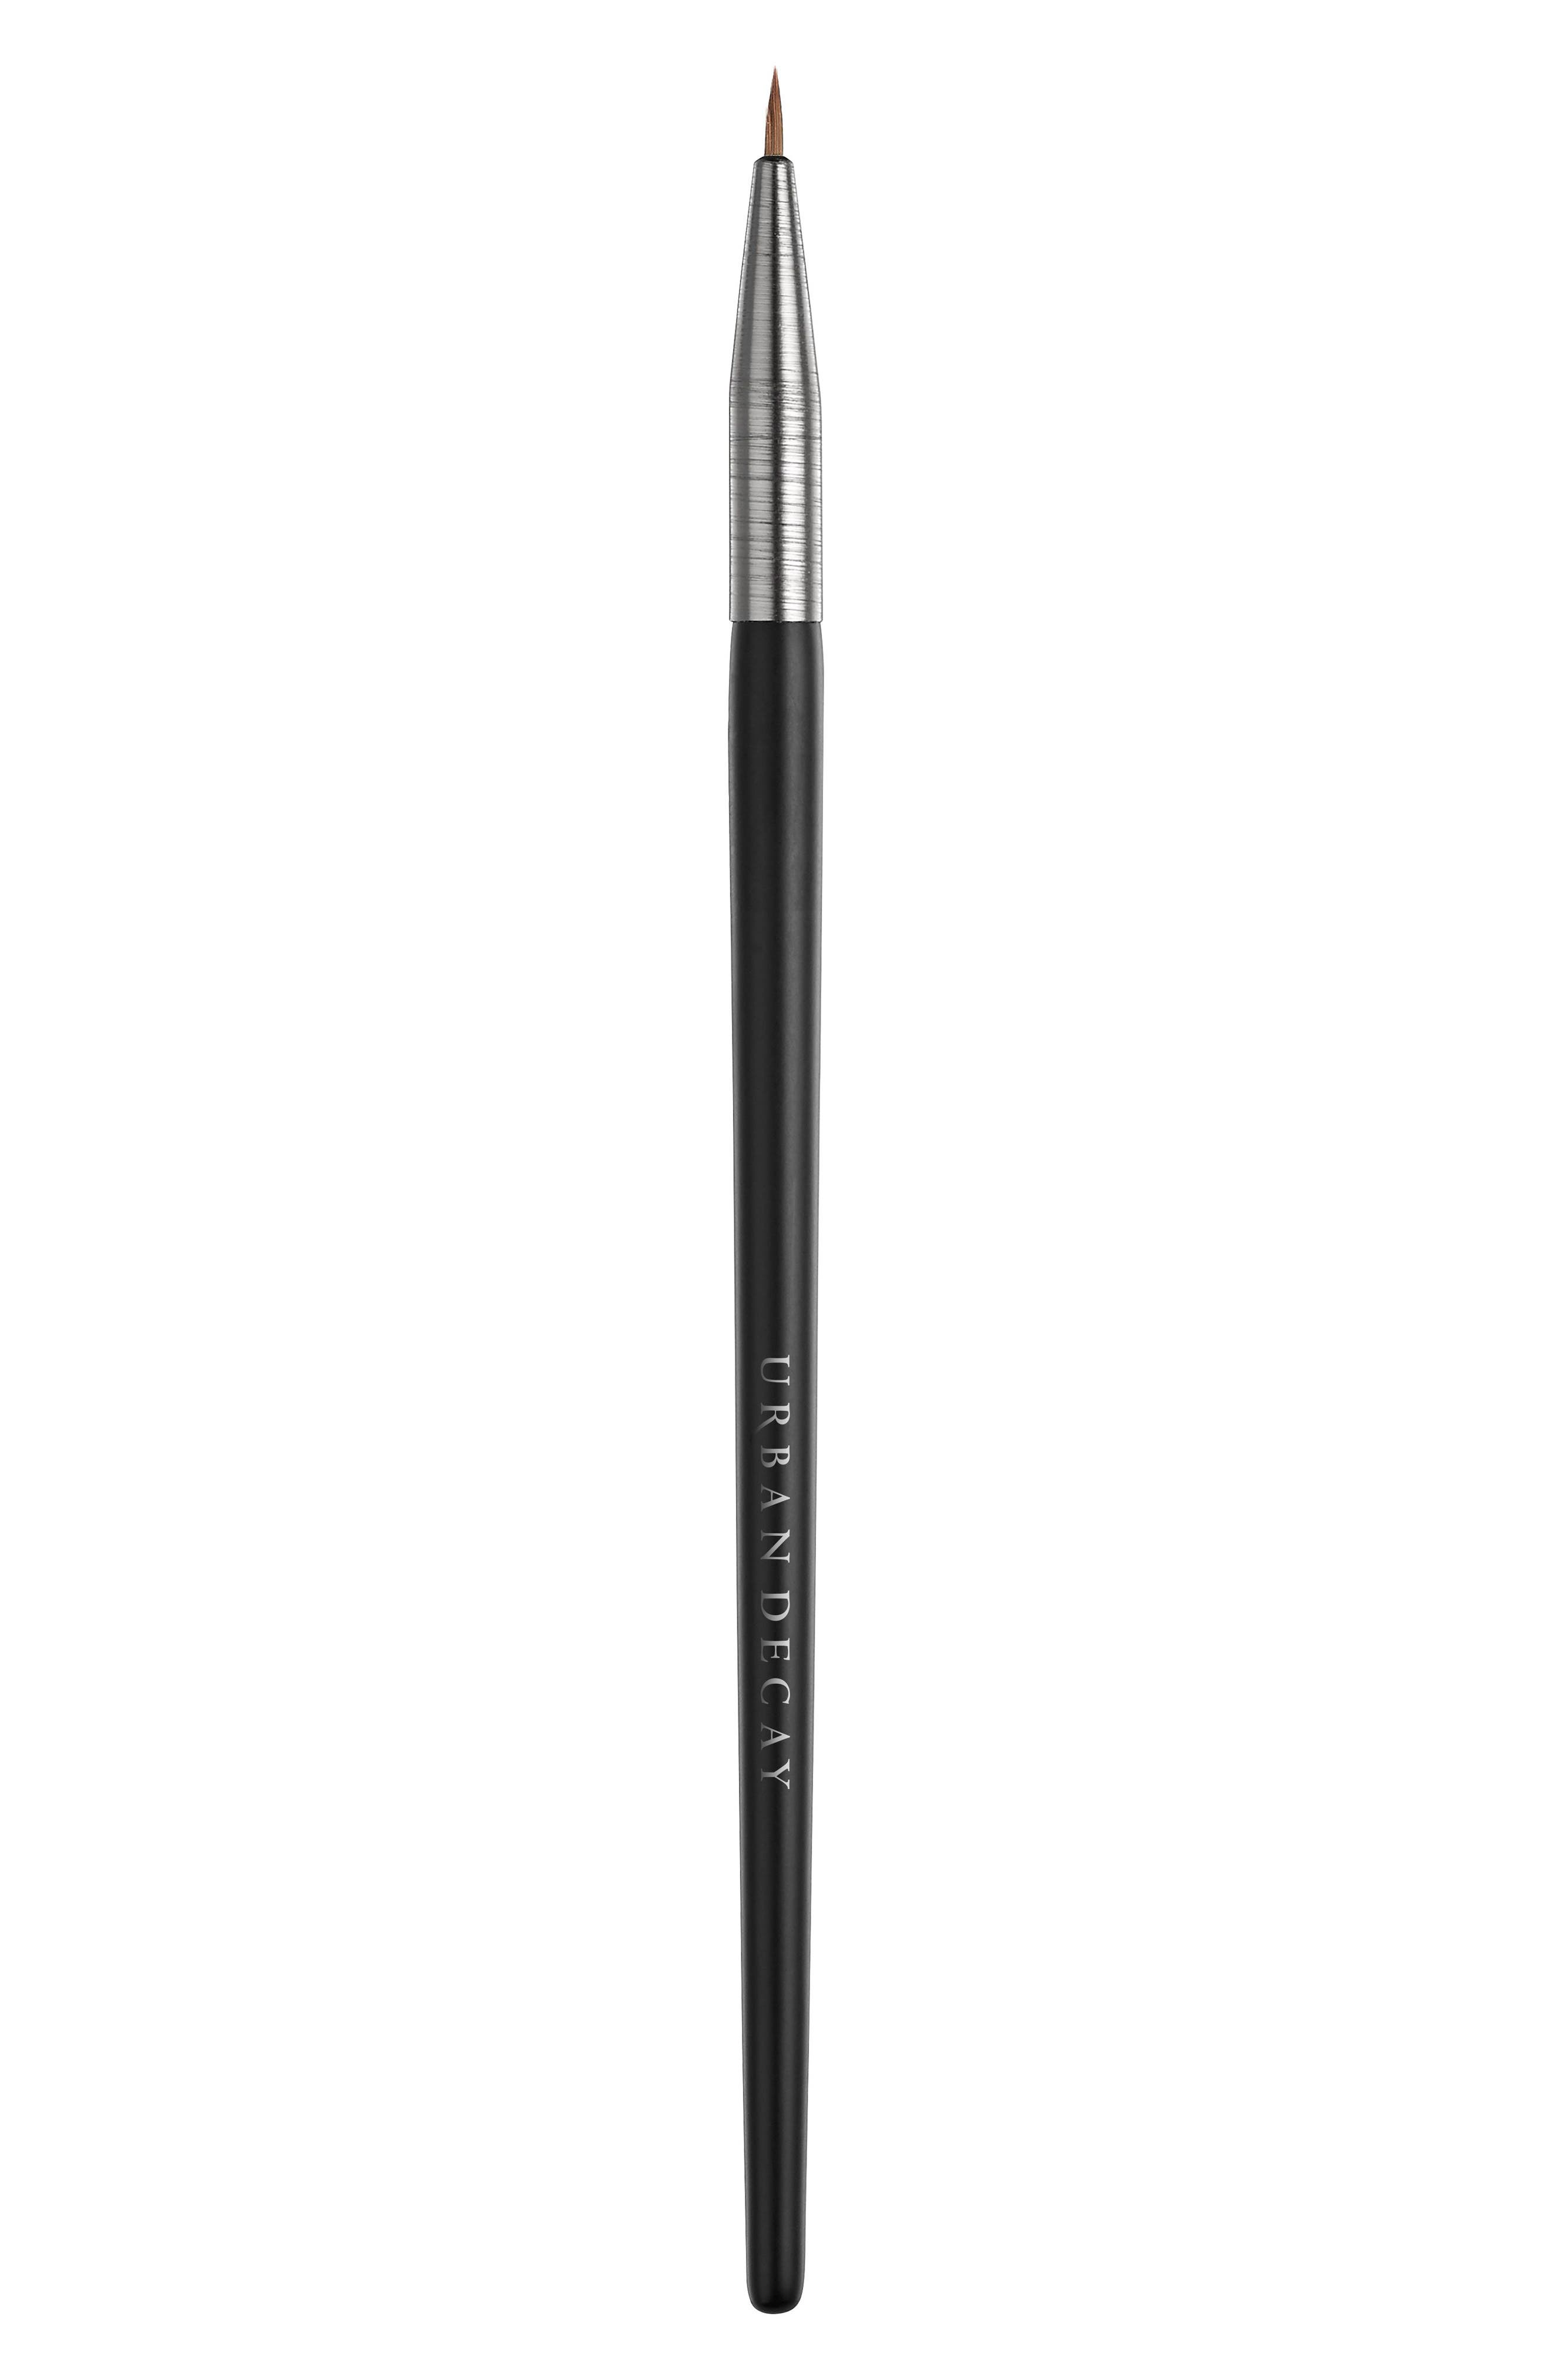 Pro Precise Eyeliner Brush,                             Alternate thumbnail 4, color,                             NO COLOR